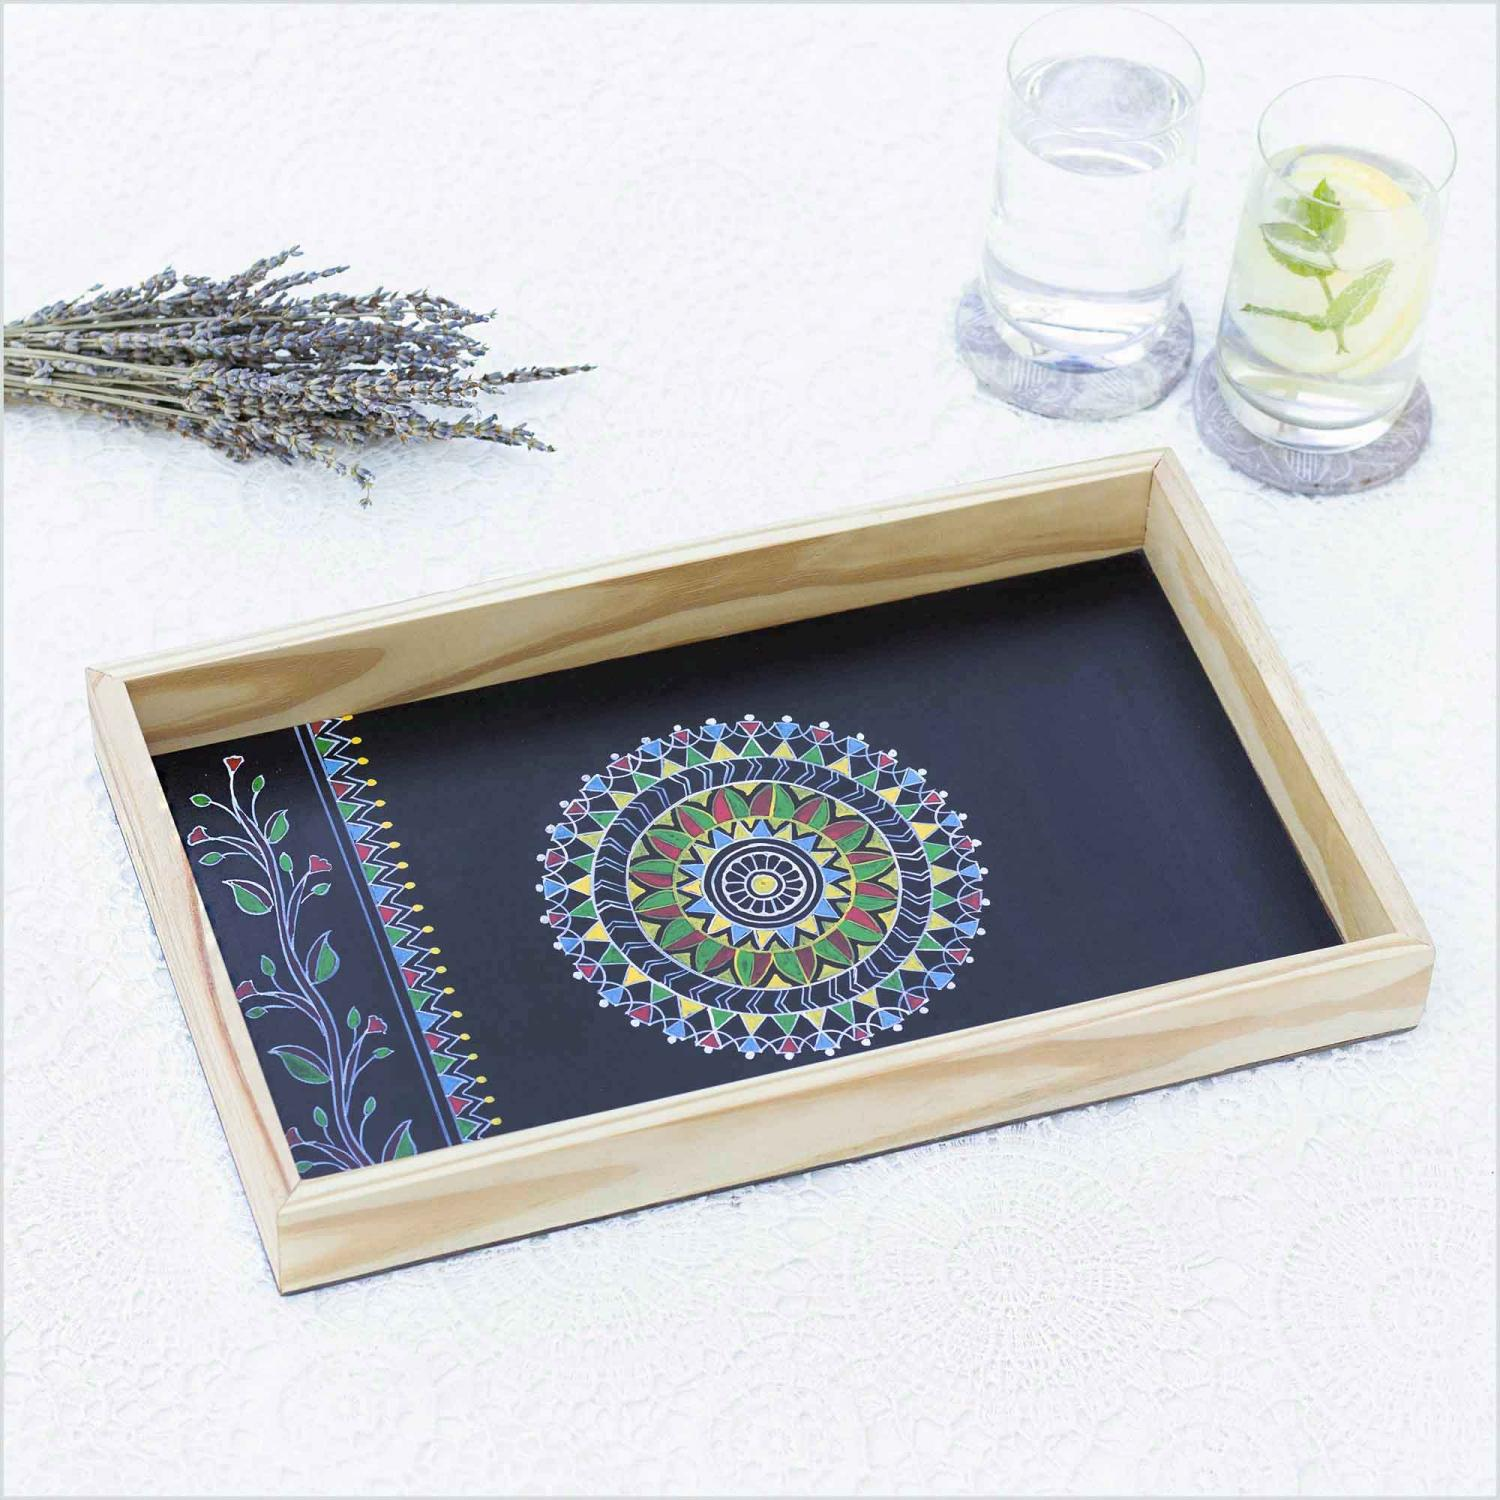 Black color Mandala design tray with the sun shaped in the center of tray kept on a white surface with the glass of water and lemonade in right and dried lavender in left